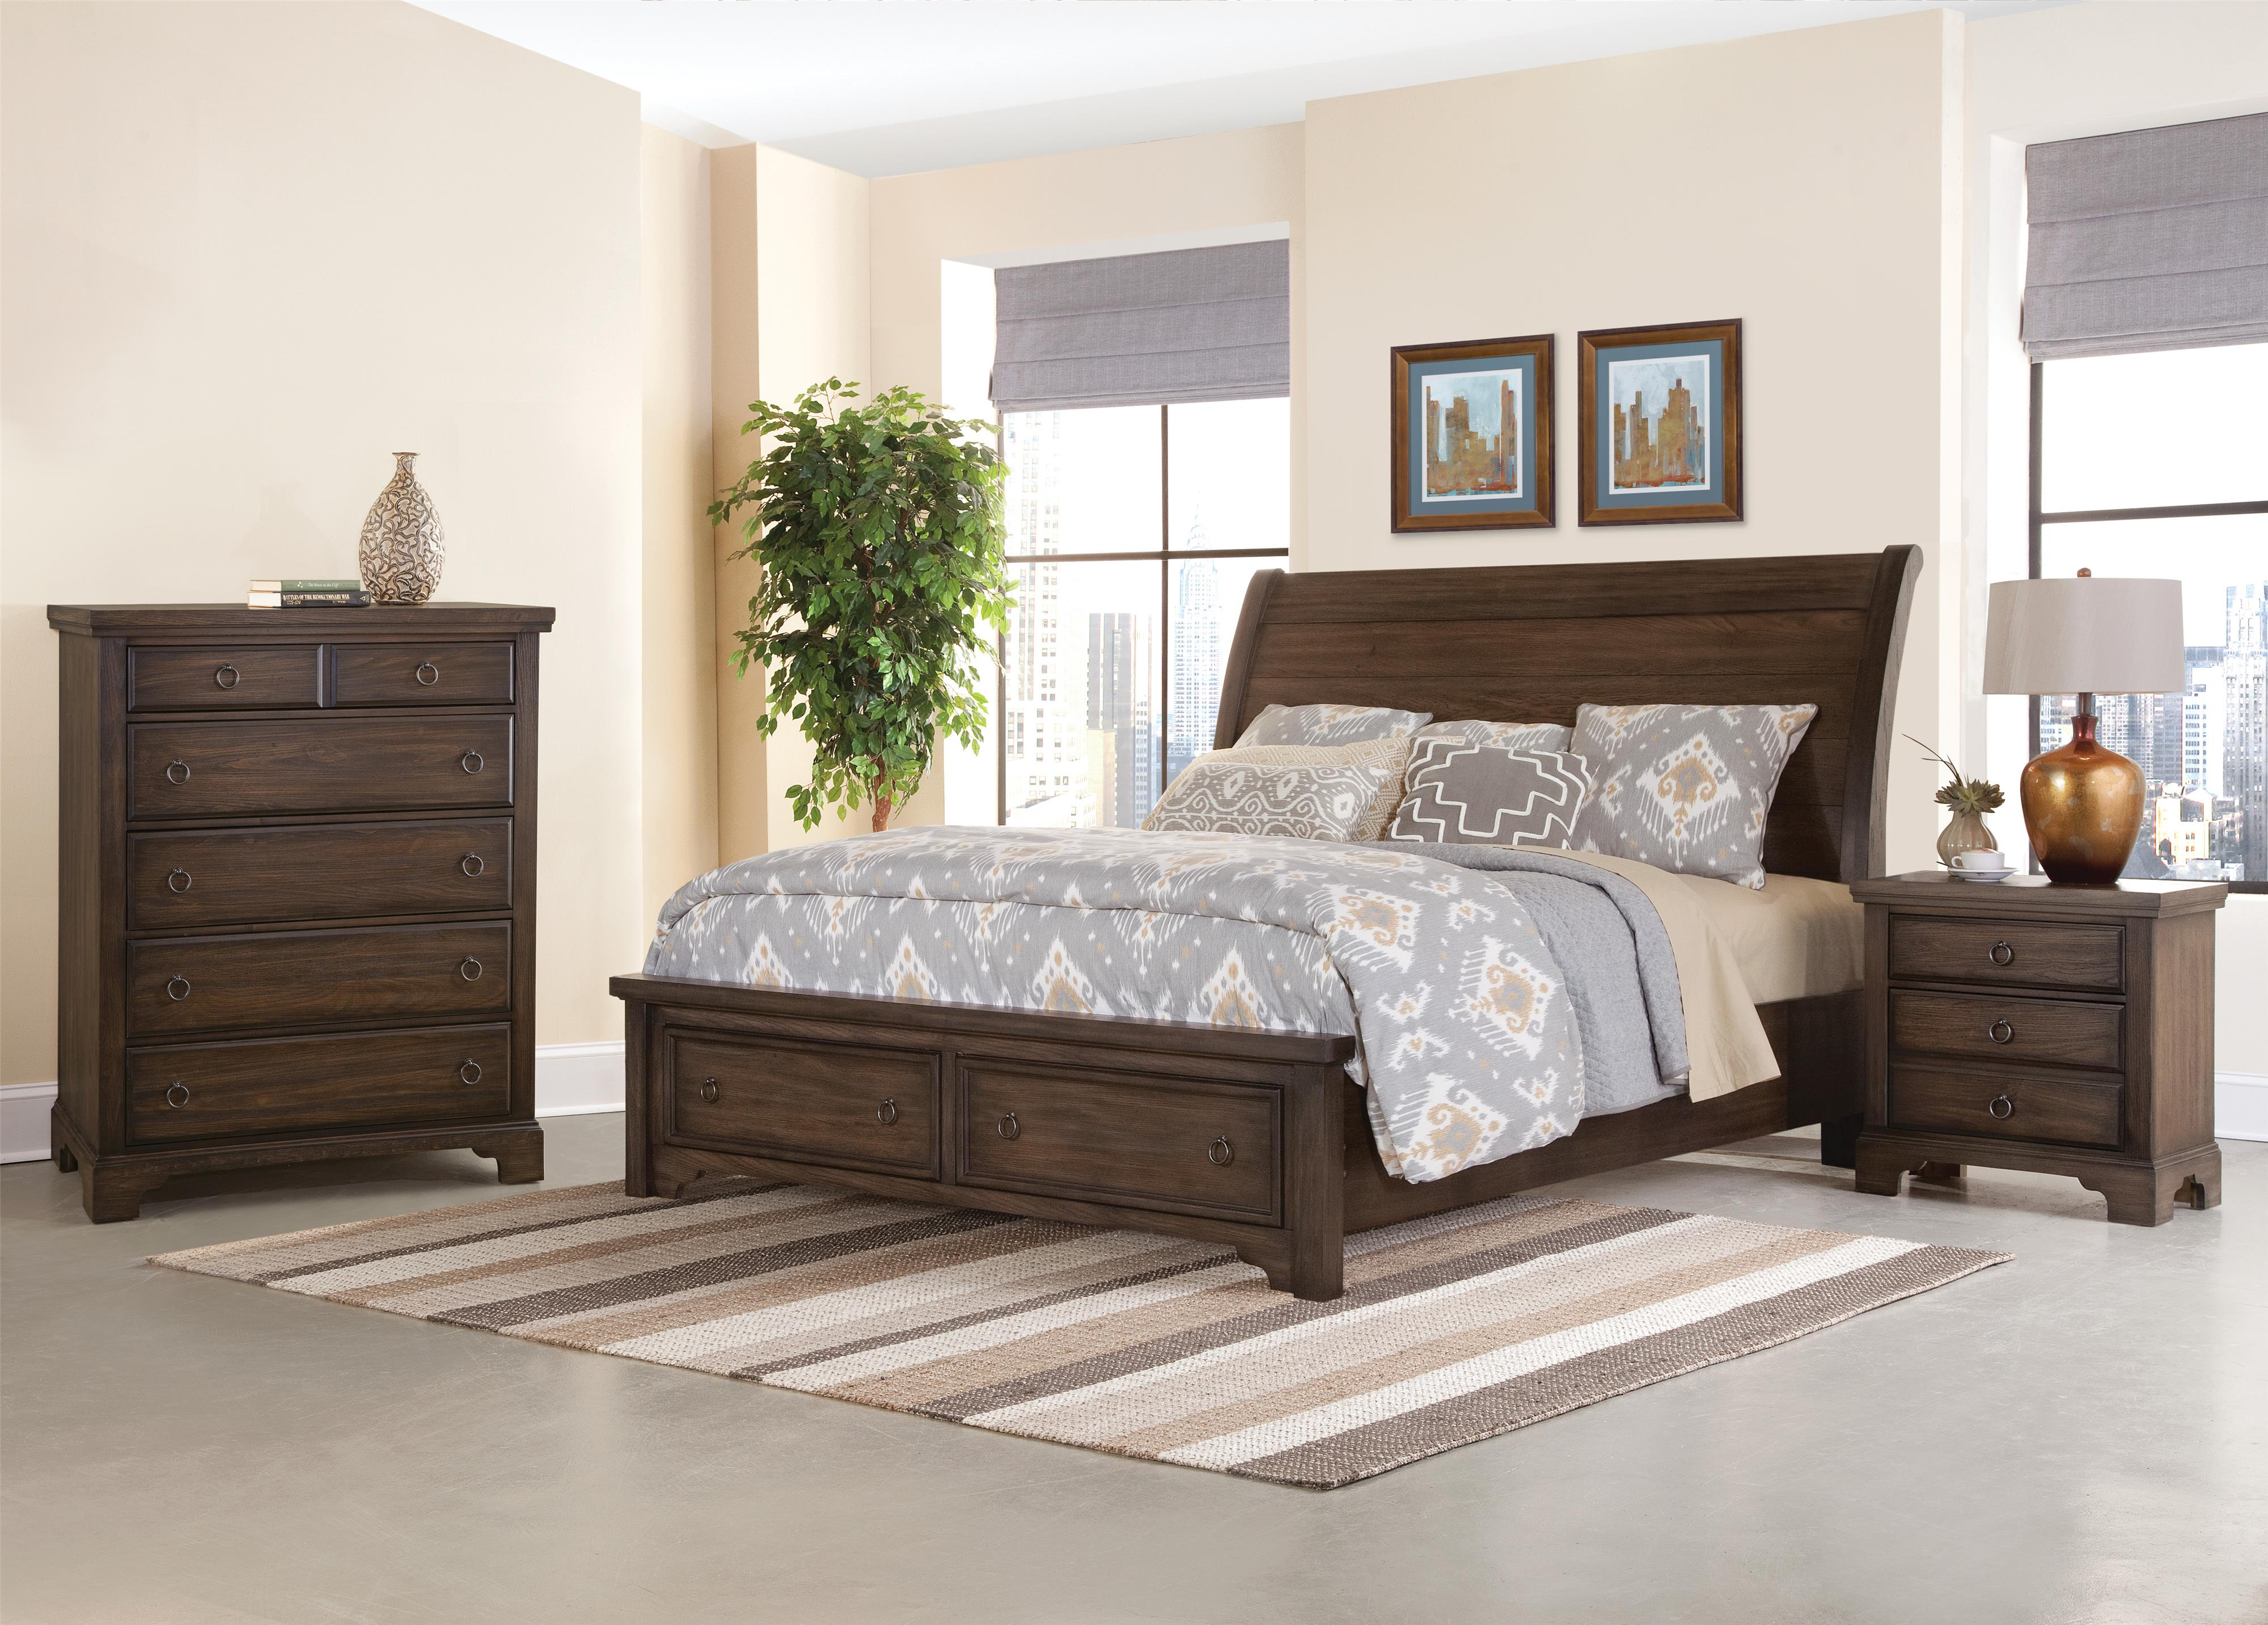 bedroom furniture for sale in richmond va free home